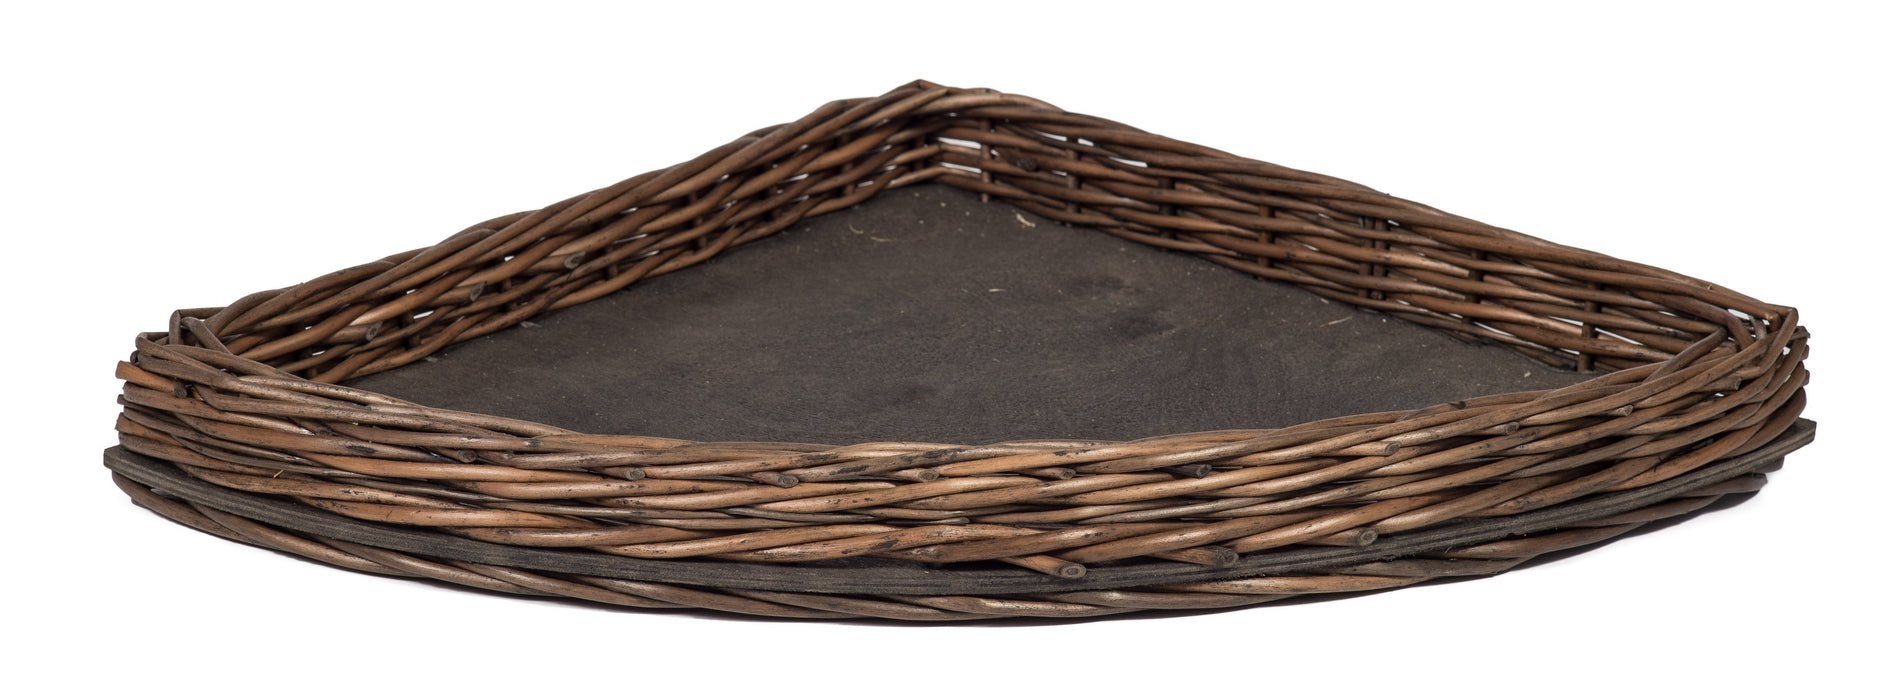 Dark Wicker Corner Display Tray Basket Prestige Wicker